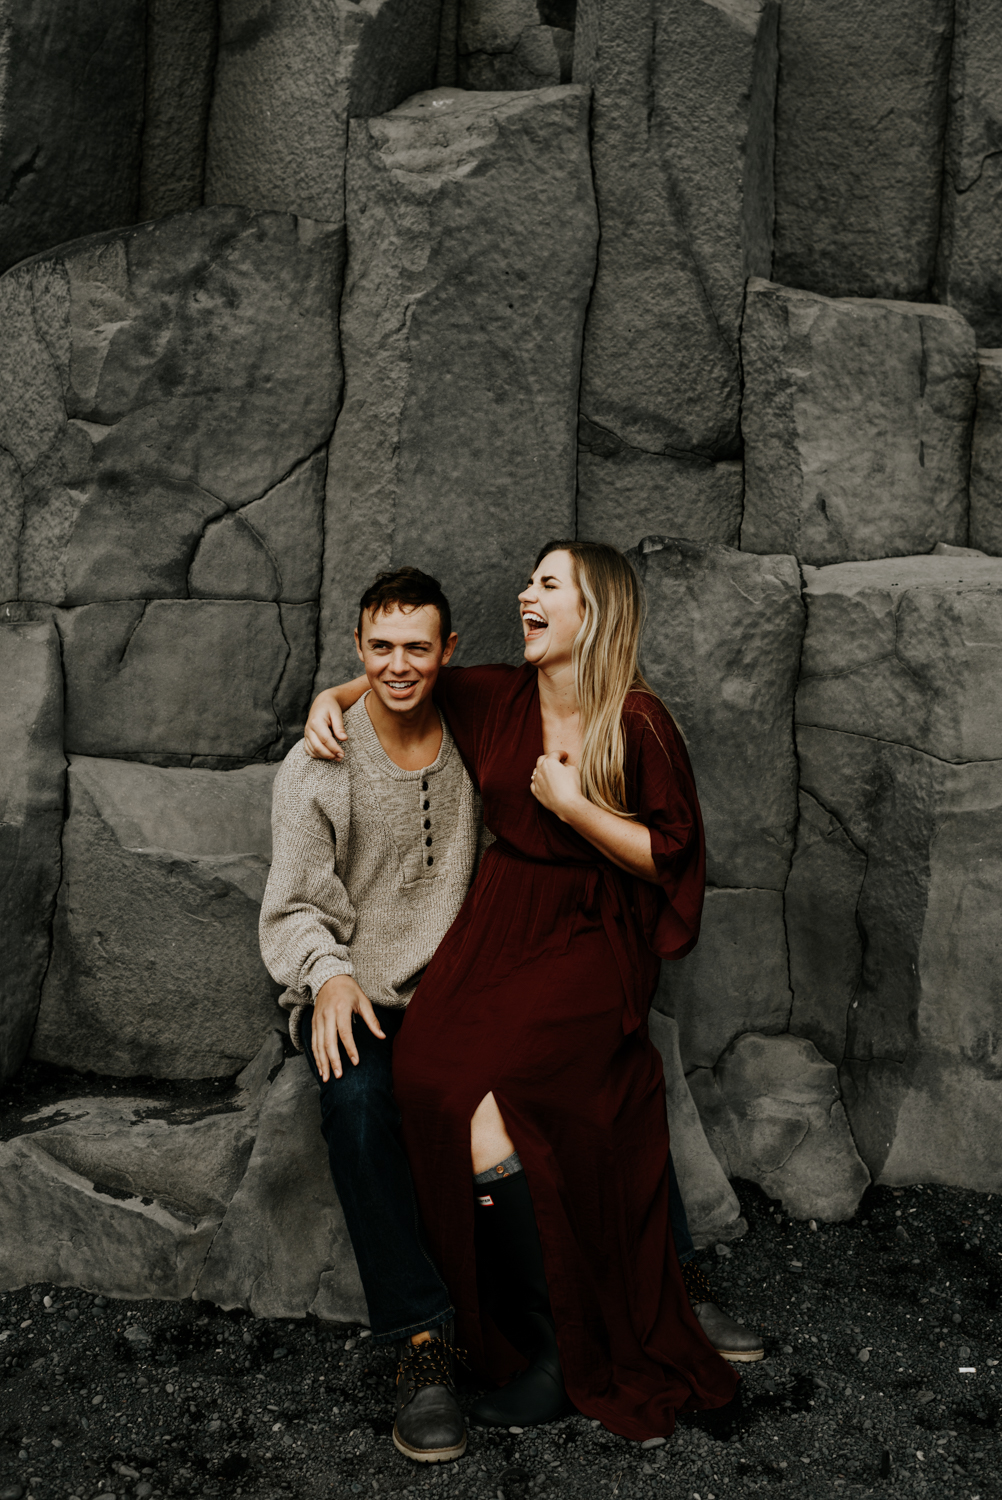 Vik, Romantic Anniversary Ideas and Adventure Photo session in Iceland